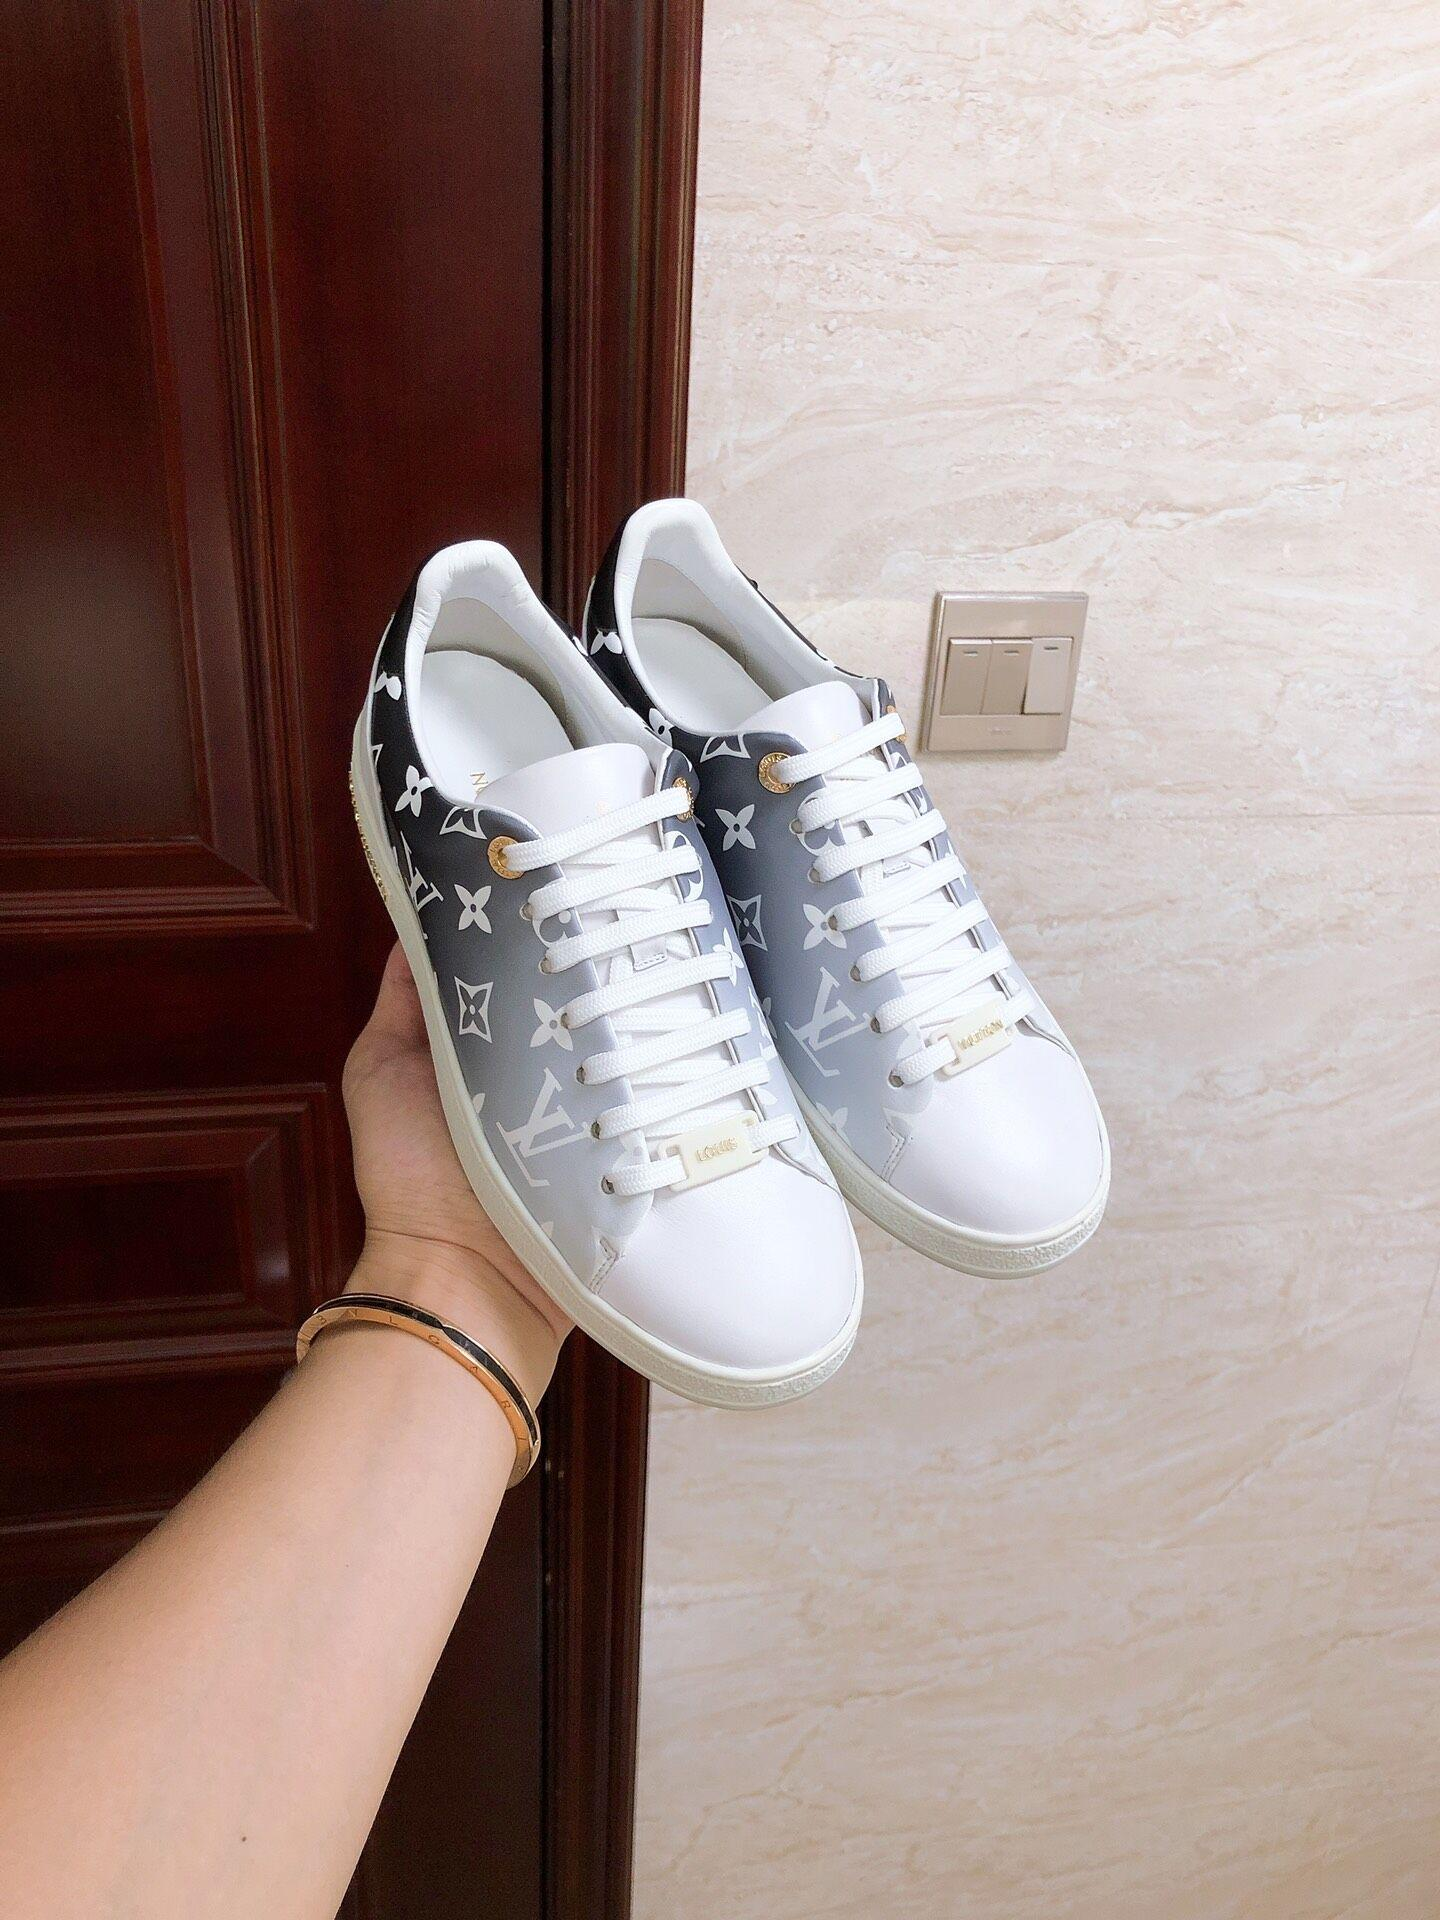 frontrow sneaker    sneaker    women shoes    pink  shoes 1A87CE  16